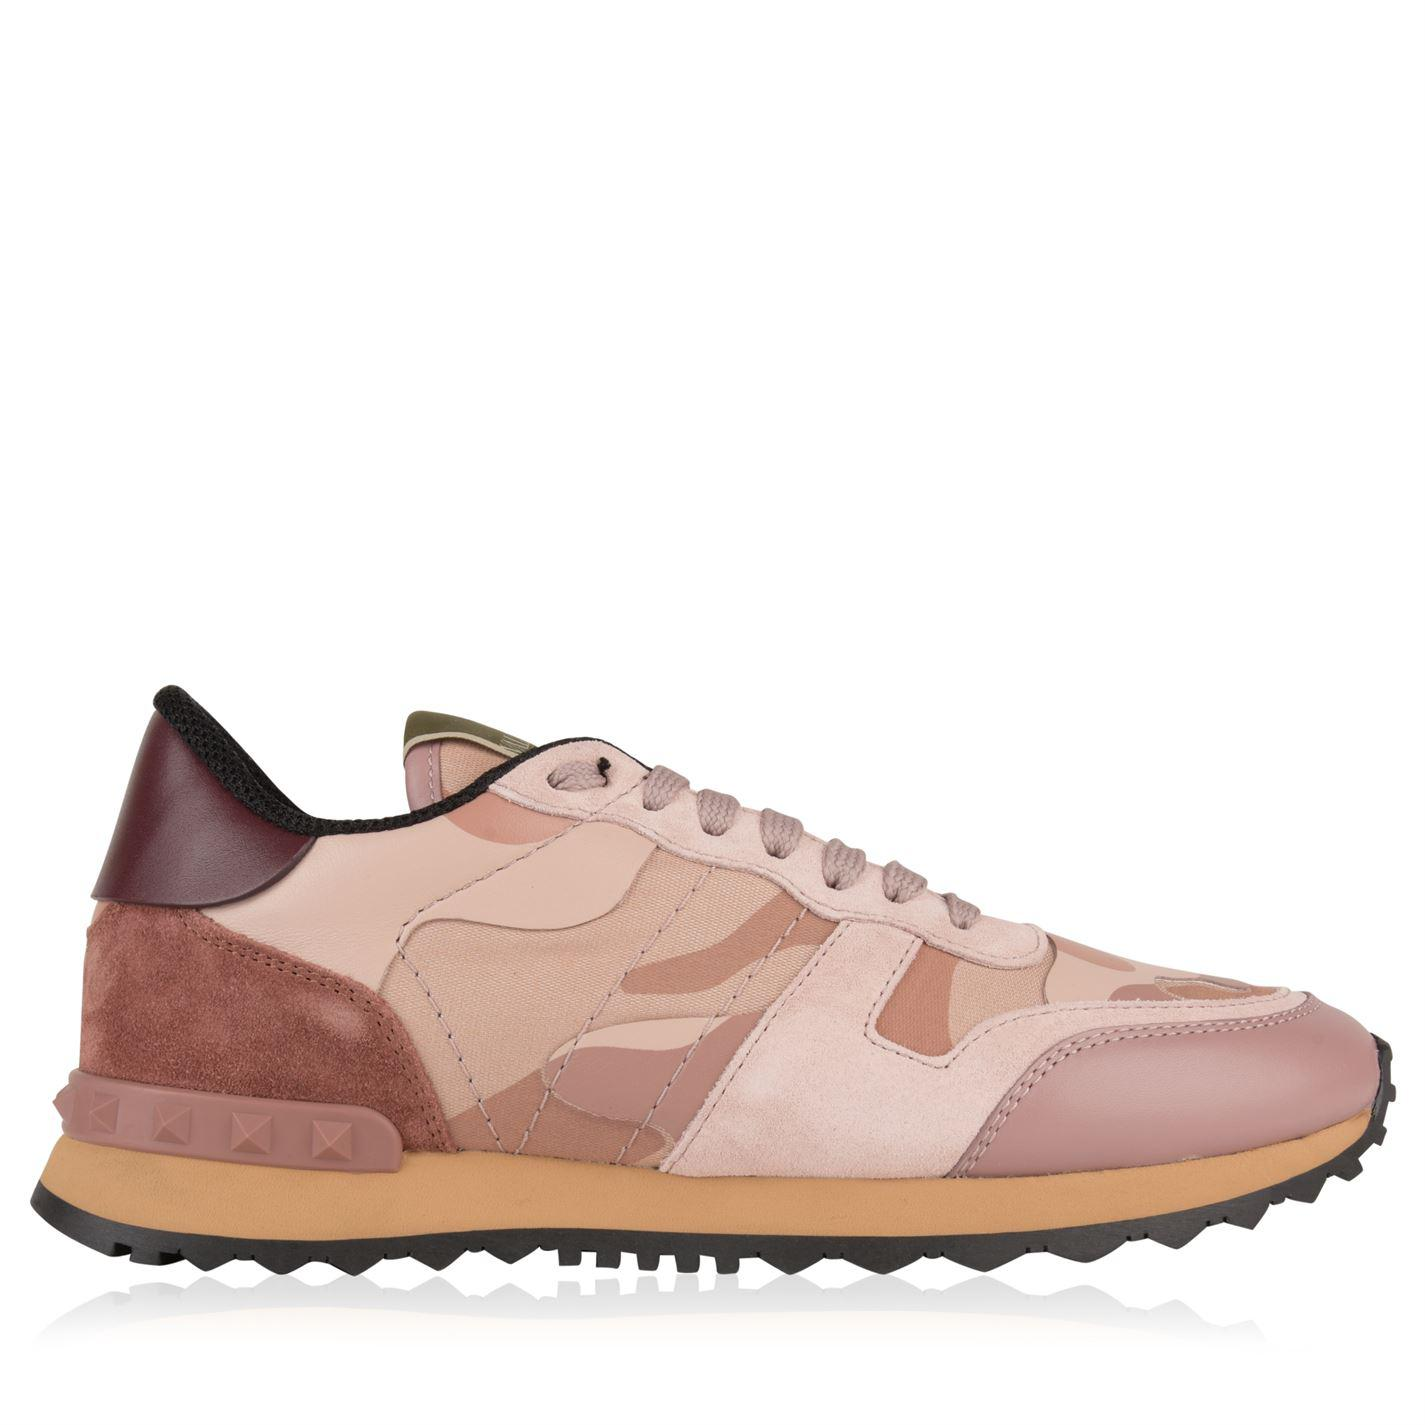 d11f81c41304e Lyst - Valentino Rockrunner Sneakers in Pink - Save 30%